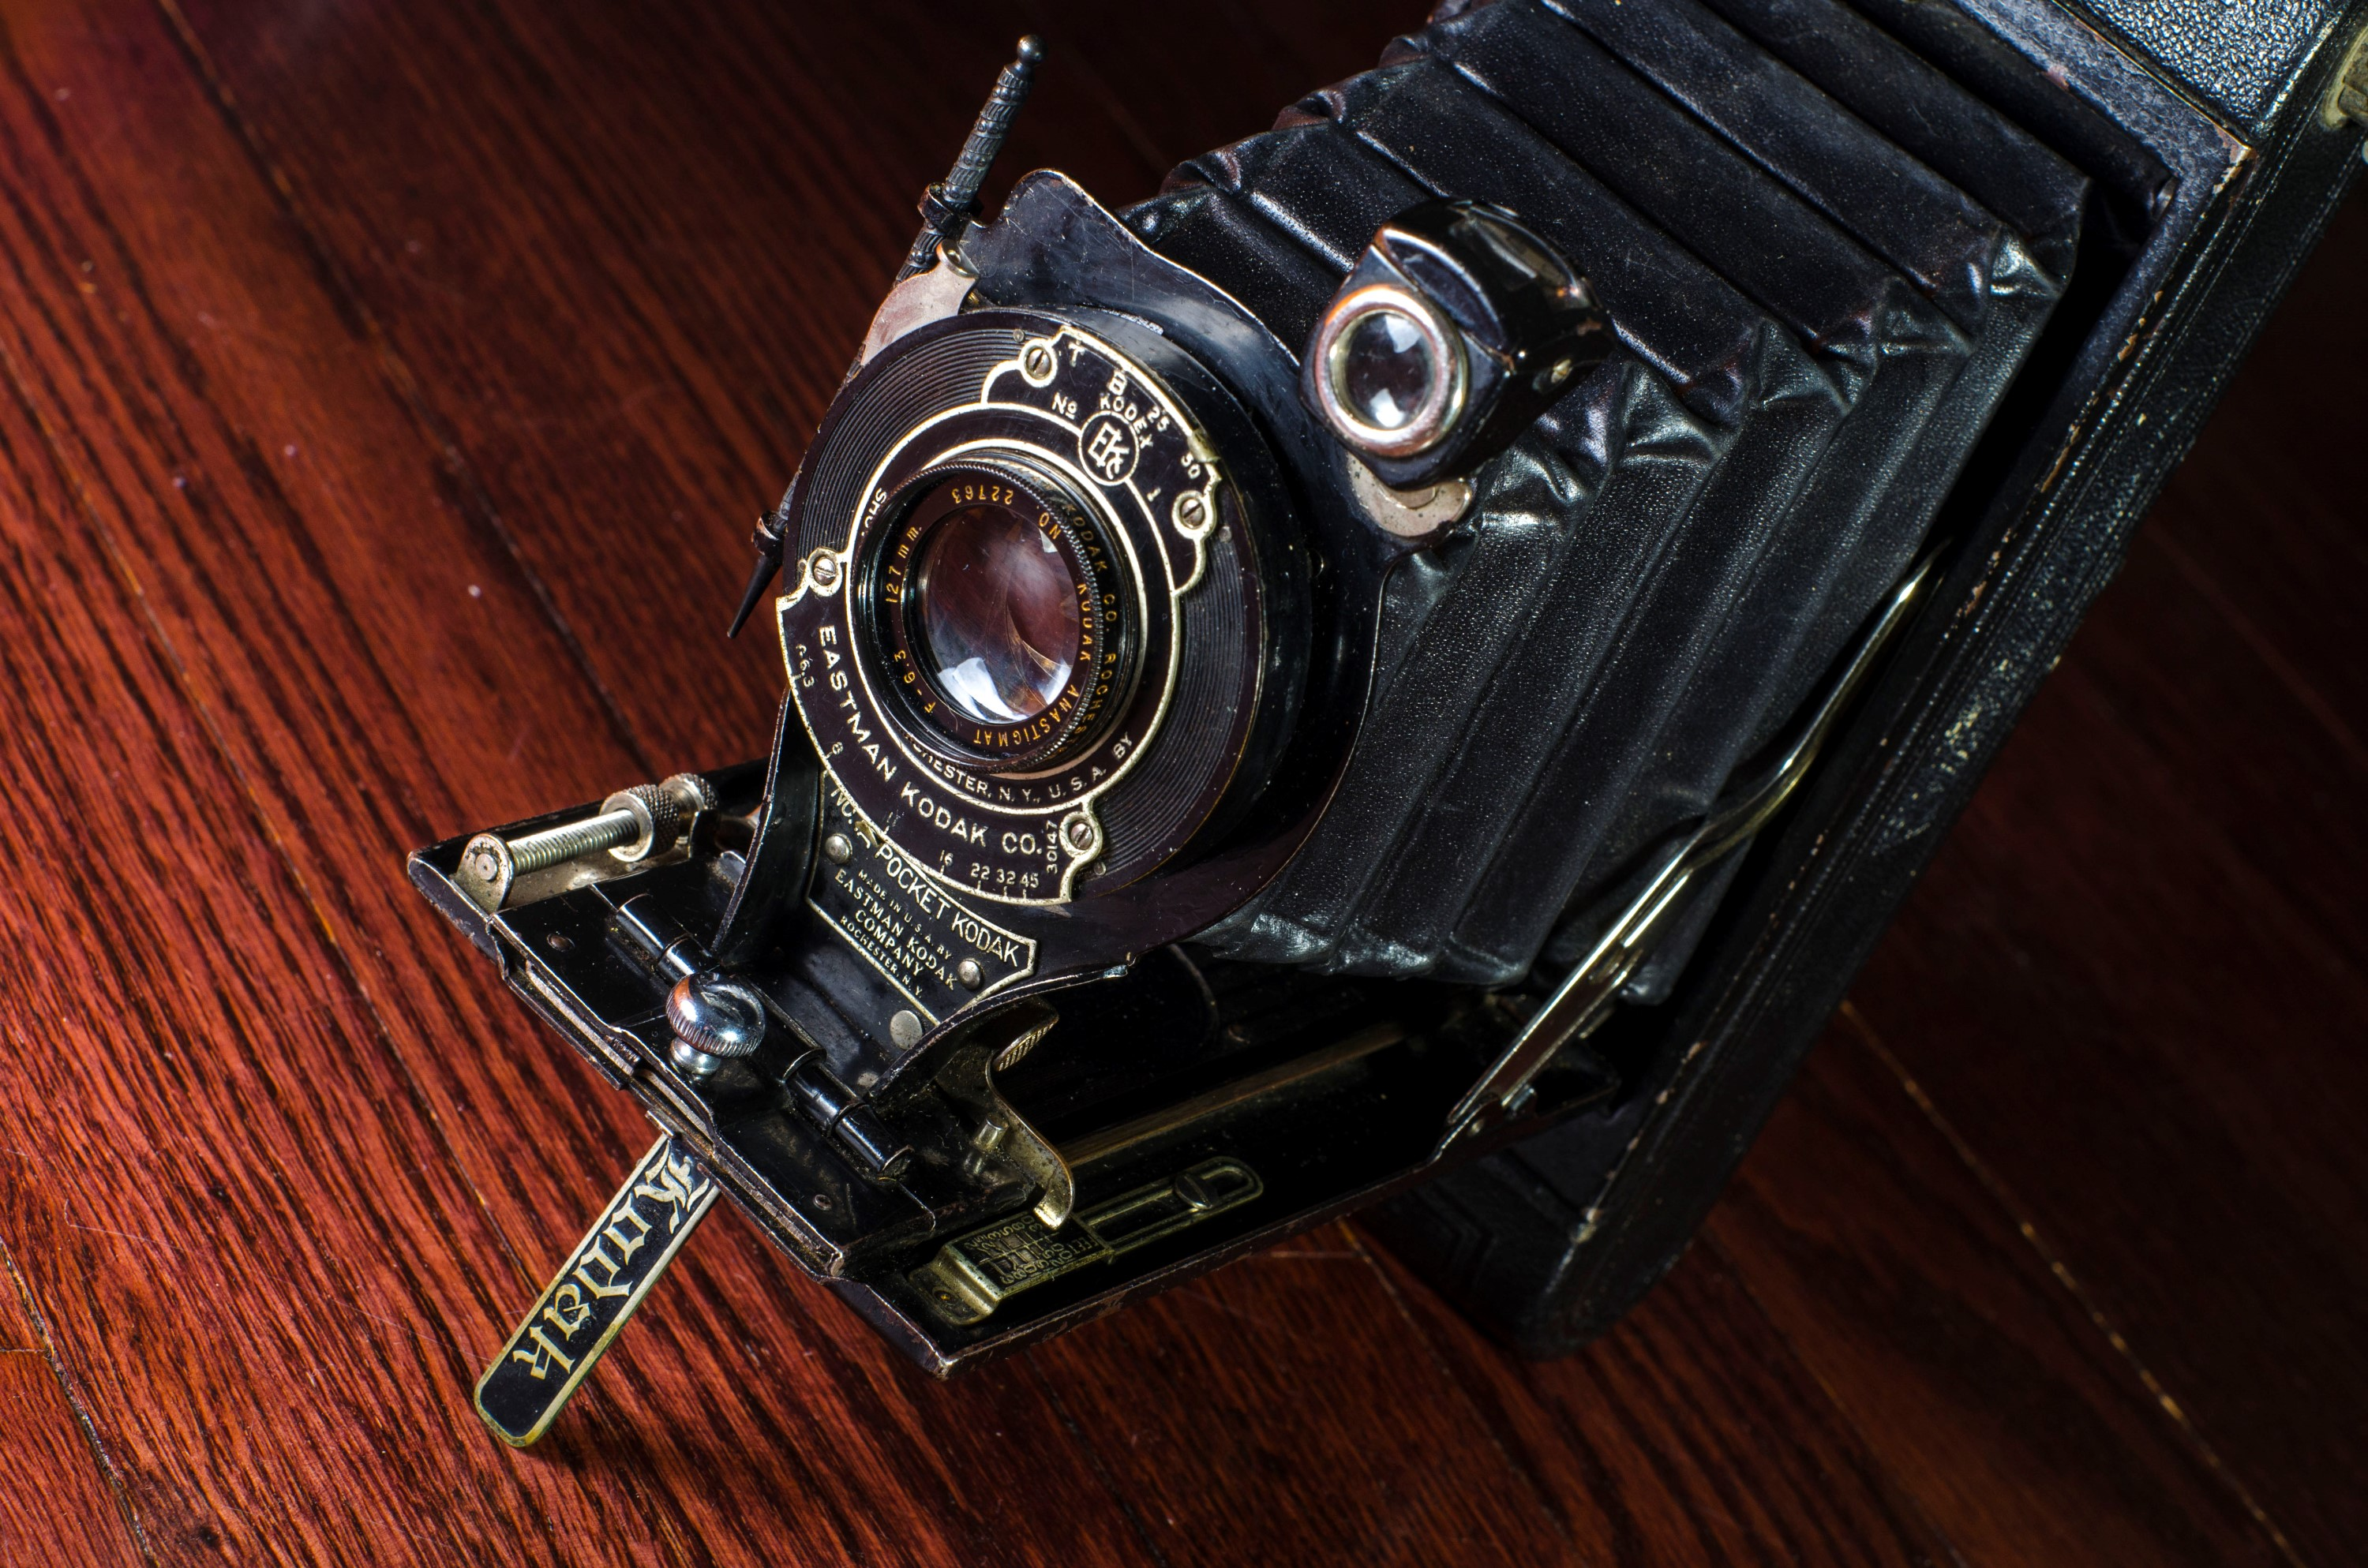 Kodak No.1A Pocket Kodak (1926)